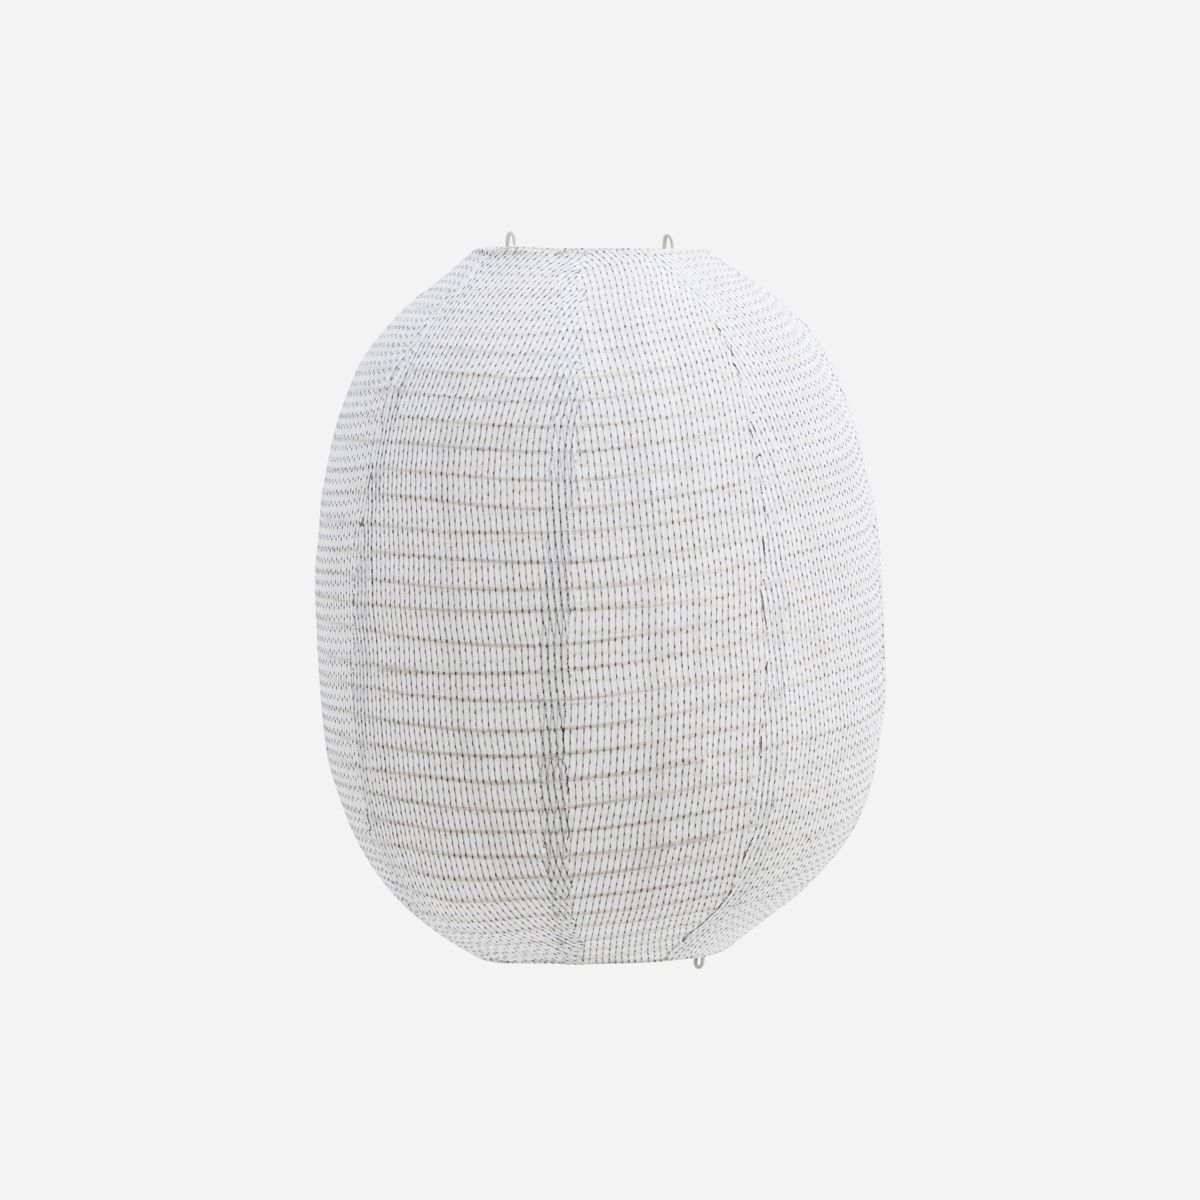 House Doctor Cotton Lampshade Stitch- 50cm